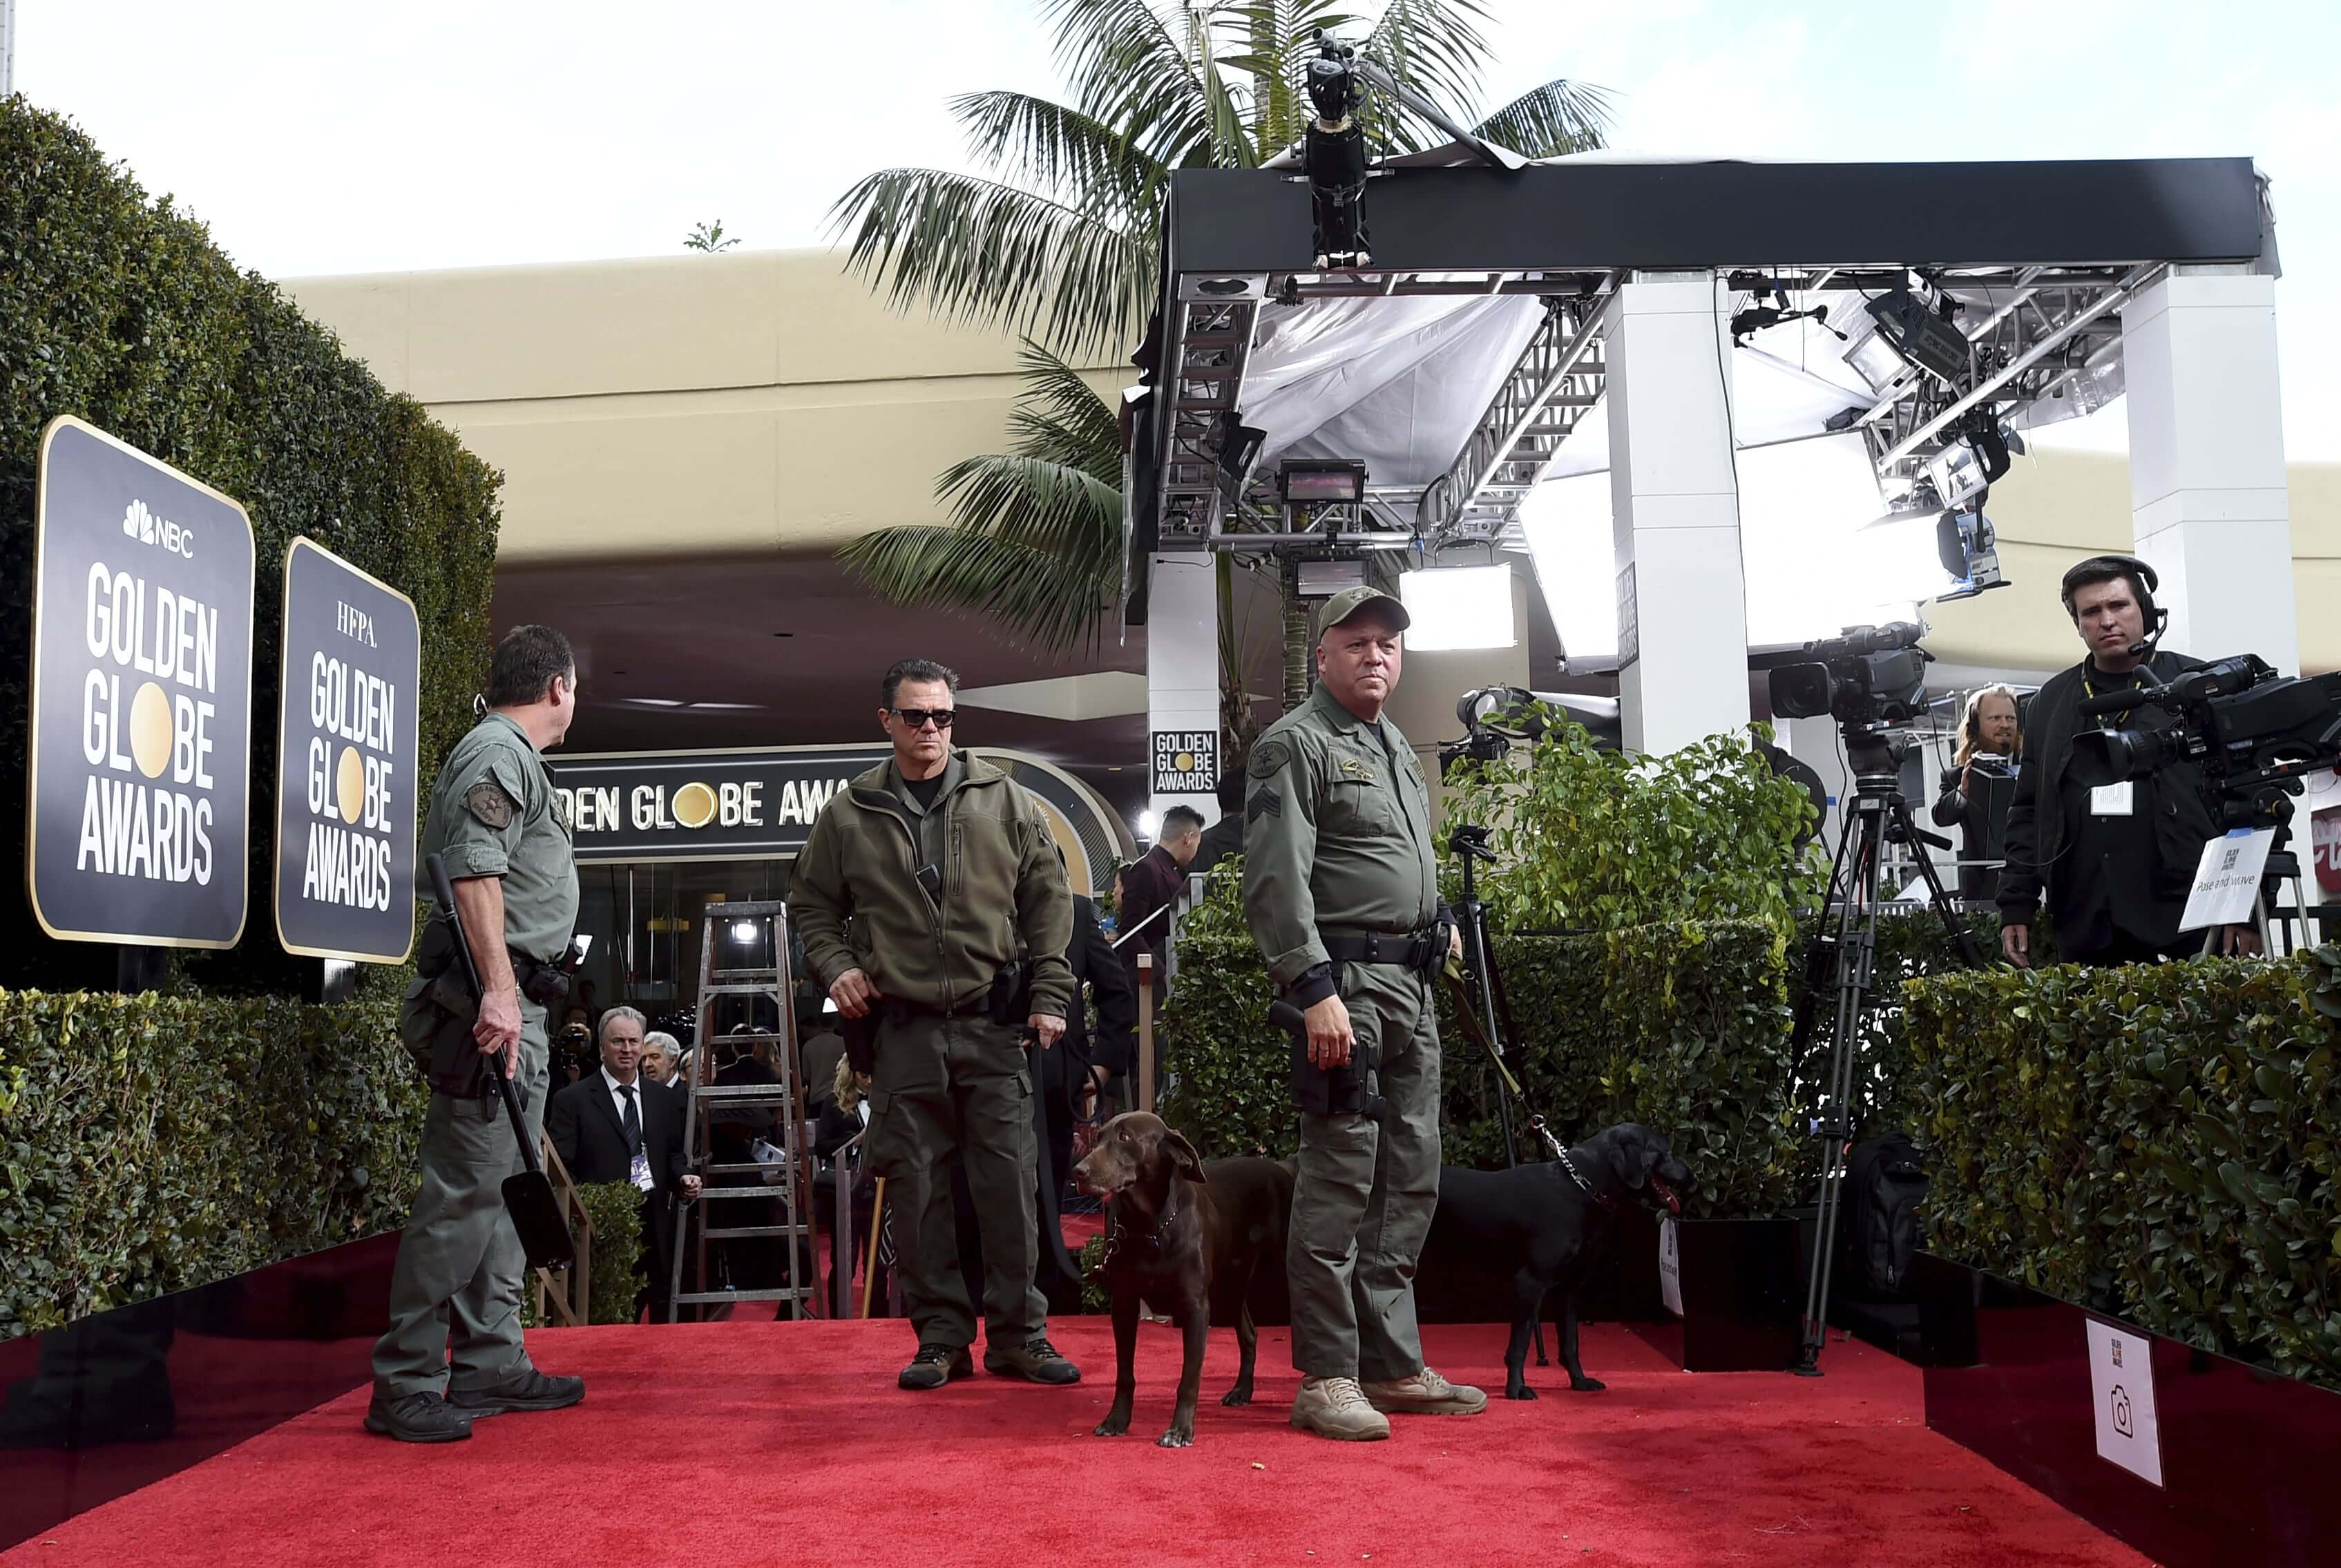 Law enforcement officers do a security sweep of the red carpet at the 76th annual Golden Globe Awards at the Beverly Hilton Hotel on Jan. 6, 2019, in Beverly Hills, California.